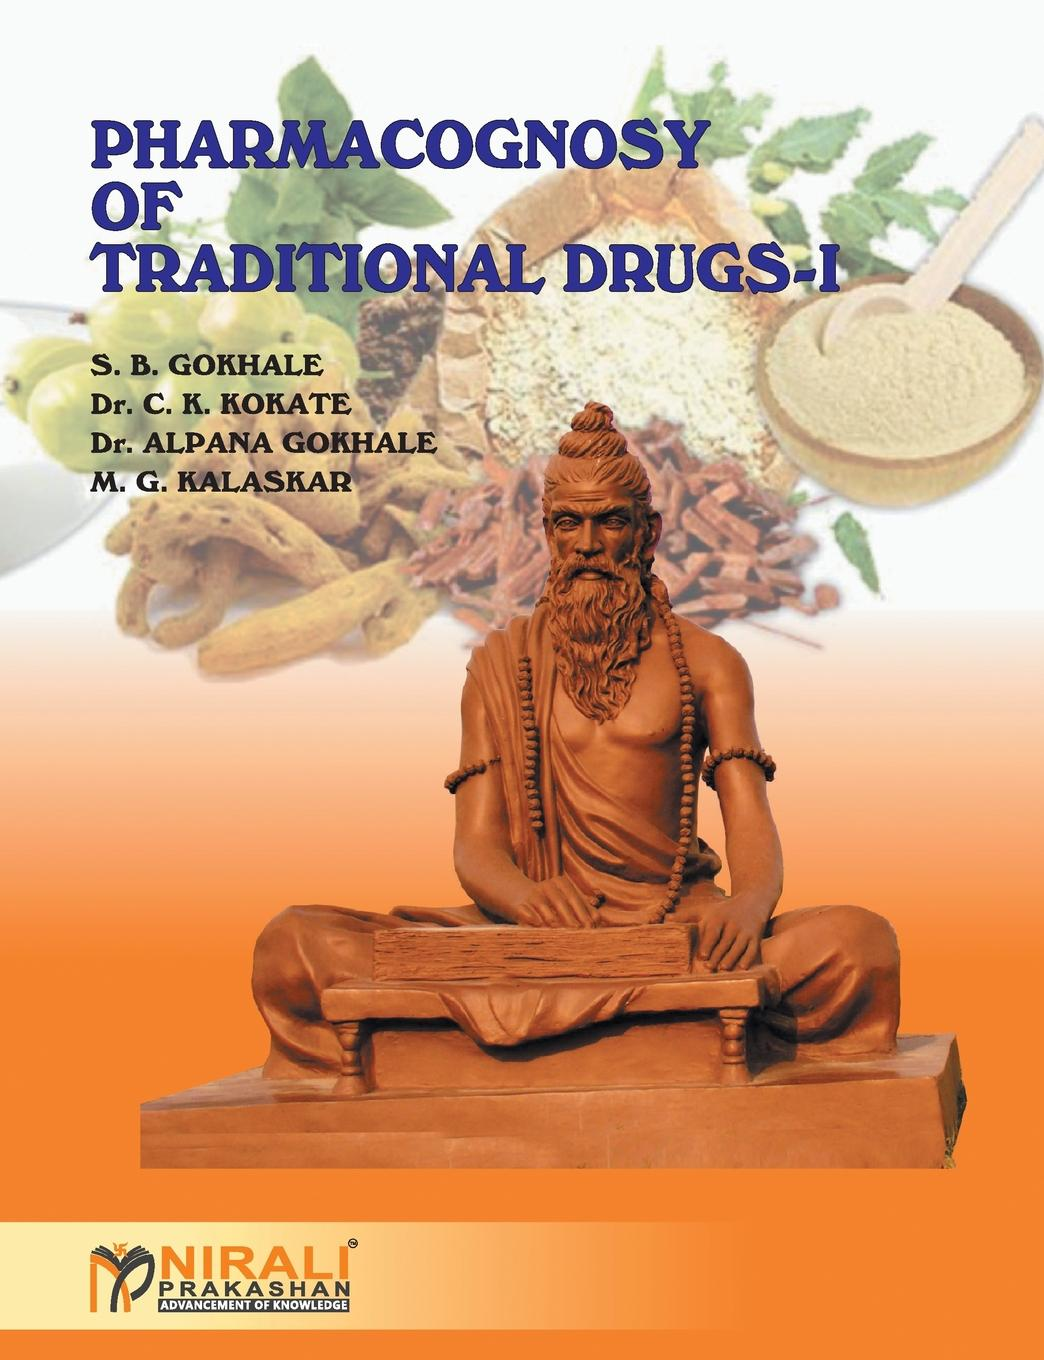 S B GOKHALE, DR C K KOKATE, DR A GOKHALE PHARMACOGNOSY OF TRADITIONAL DRUGS I an singh dr my gokhale dr ns mujumdar engineering mathematics i